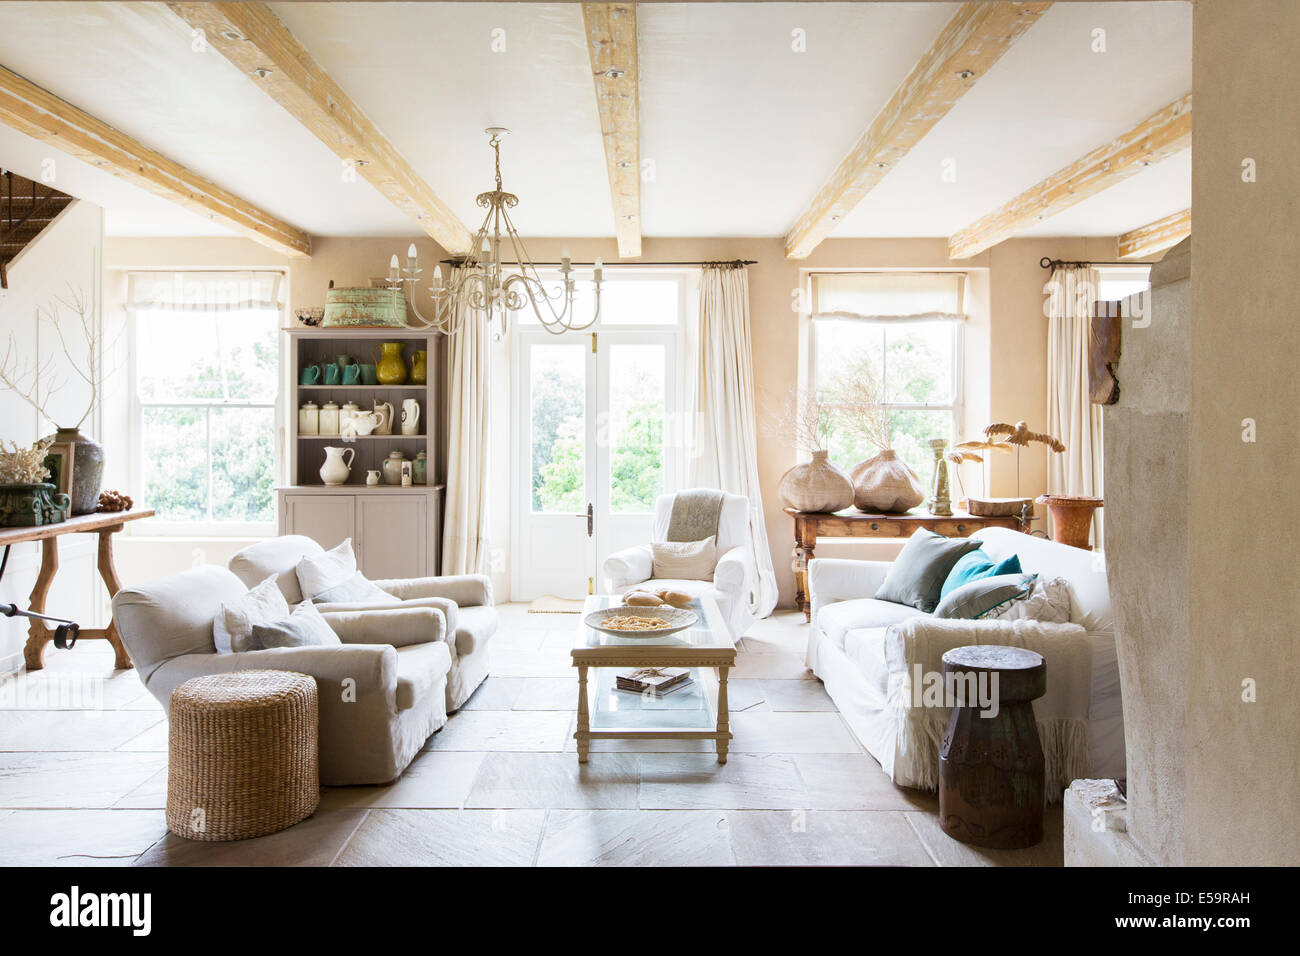 Living Room Stock Photos & Living Room Stock Images - Alamy